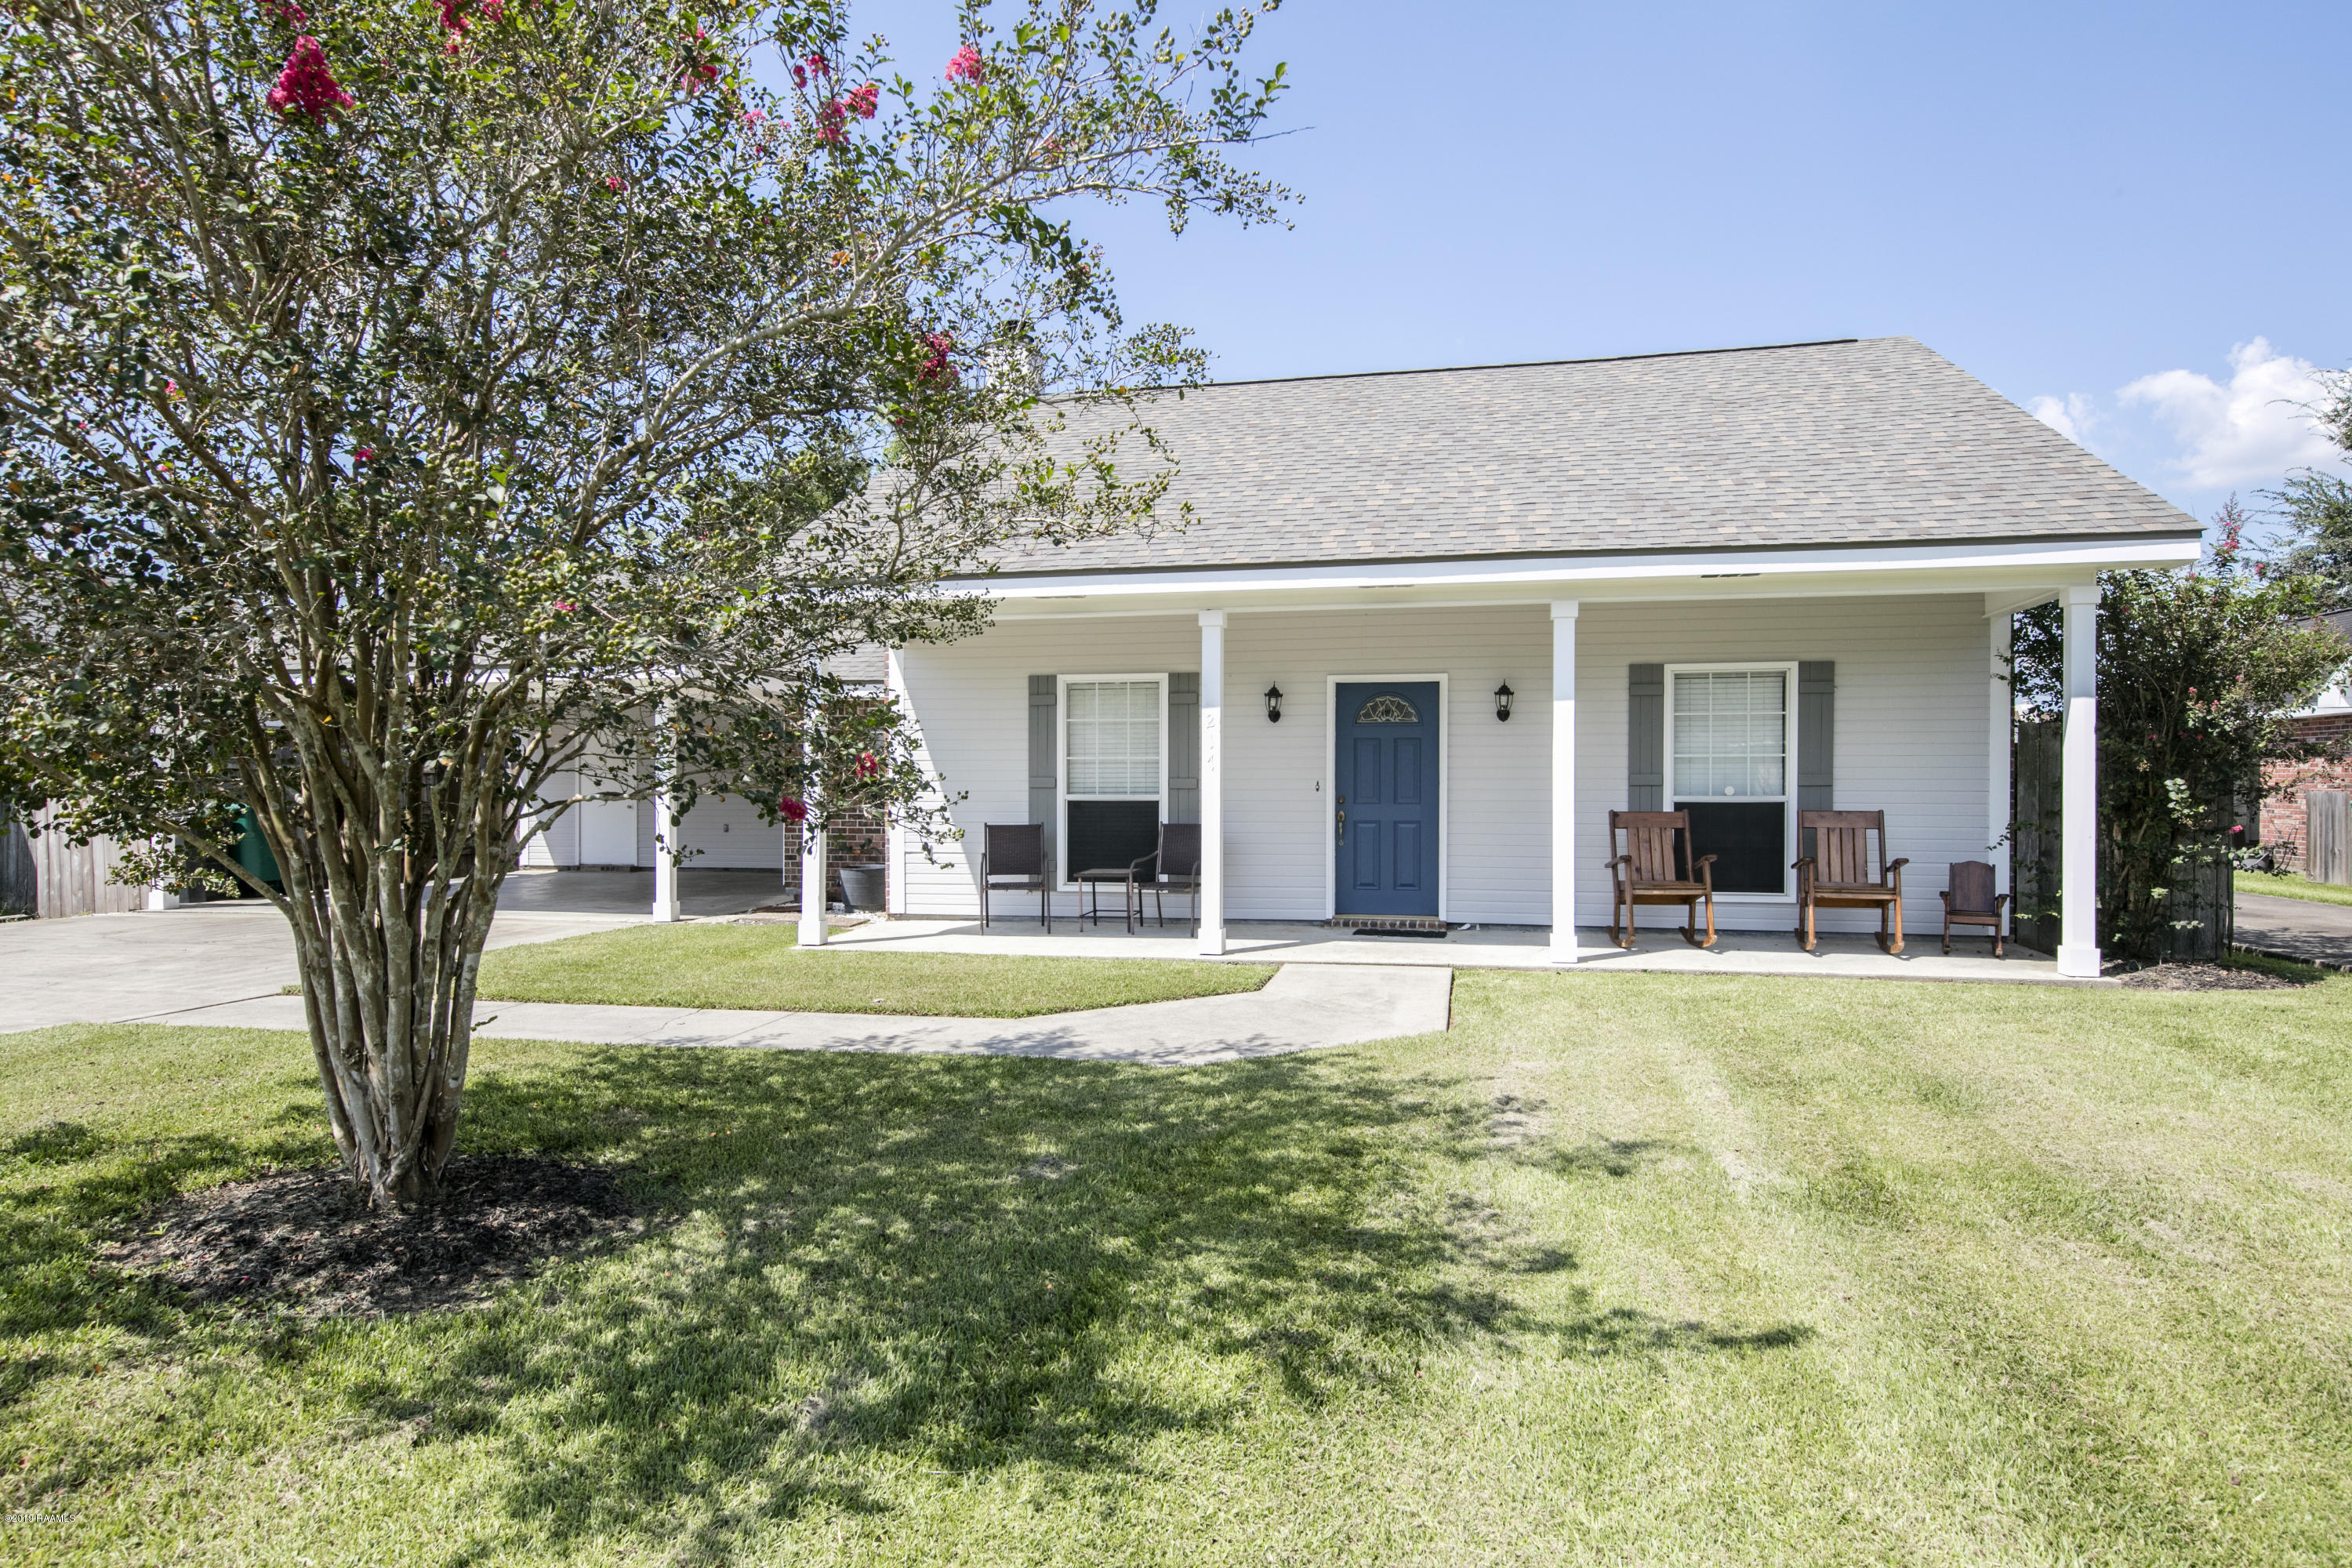 217 Sundown Drive, Broussard, LA 70518 Photo #2